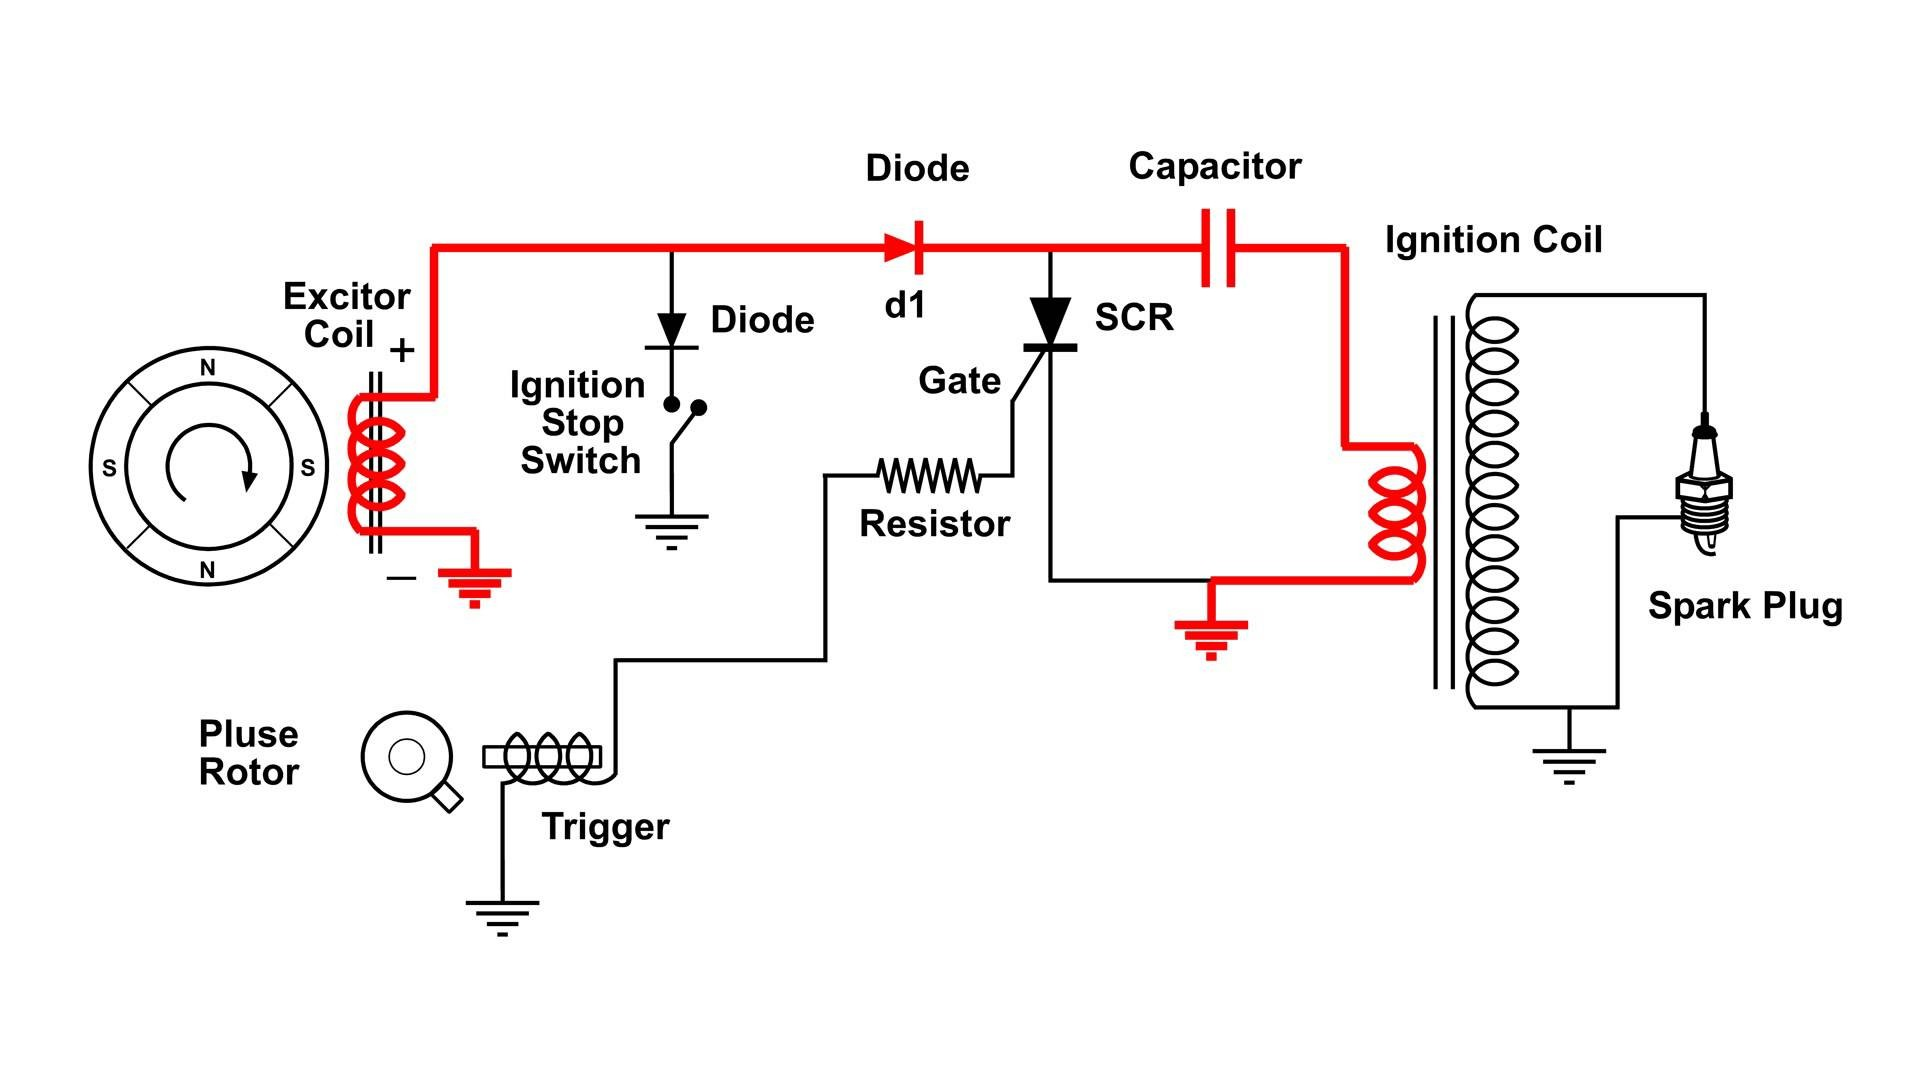 Diagram Of Coil Ignition System Cdi Capacitor Discharge Ignition Circuit Demo Of Diagram Of Coil Ignition System Car Ignition System Wiring Diagram Transistor Type Ignition